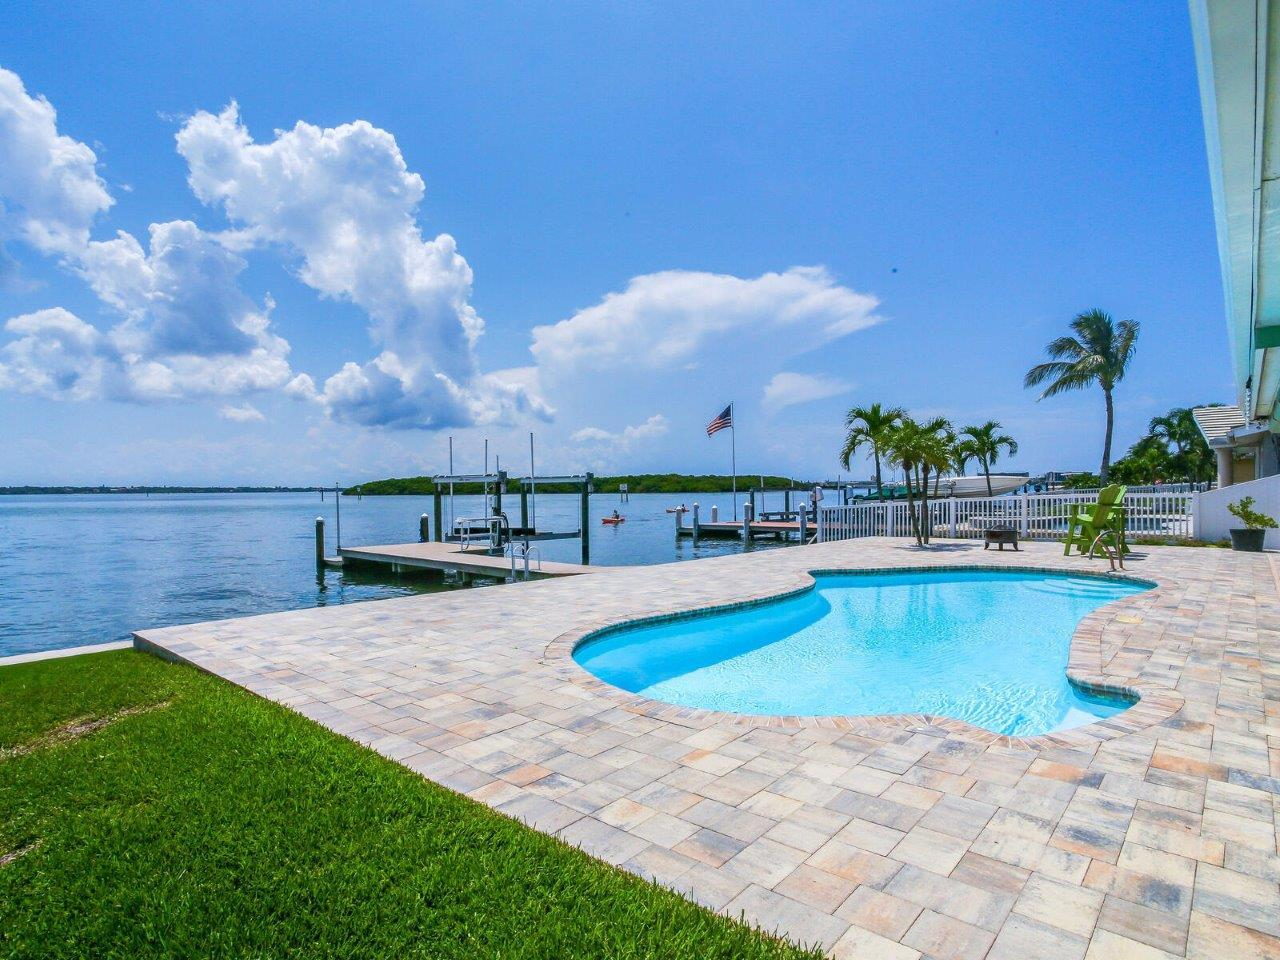 Property Image for 537 Johns Pass Ave